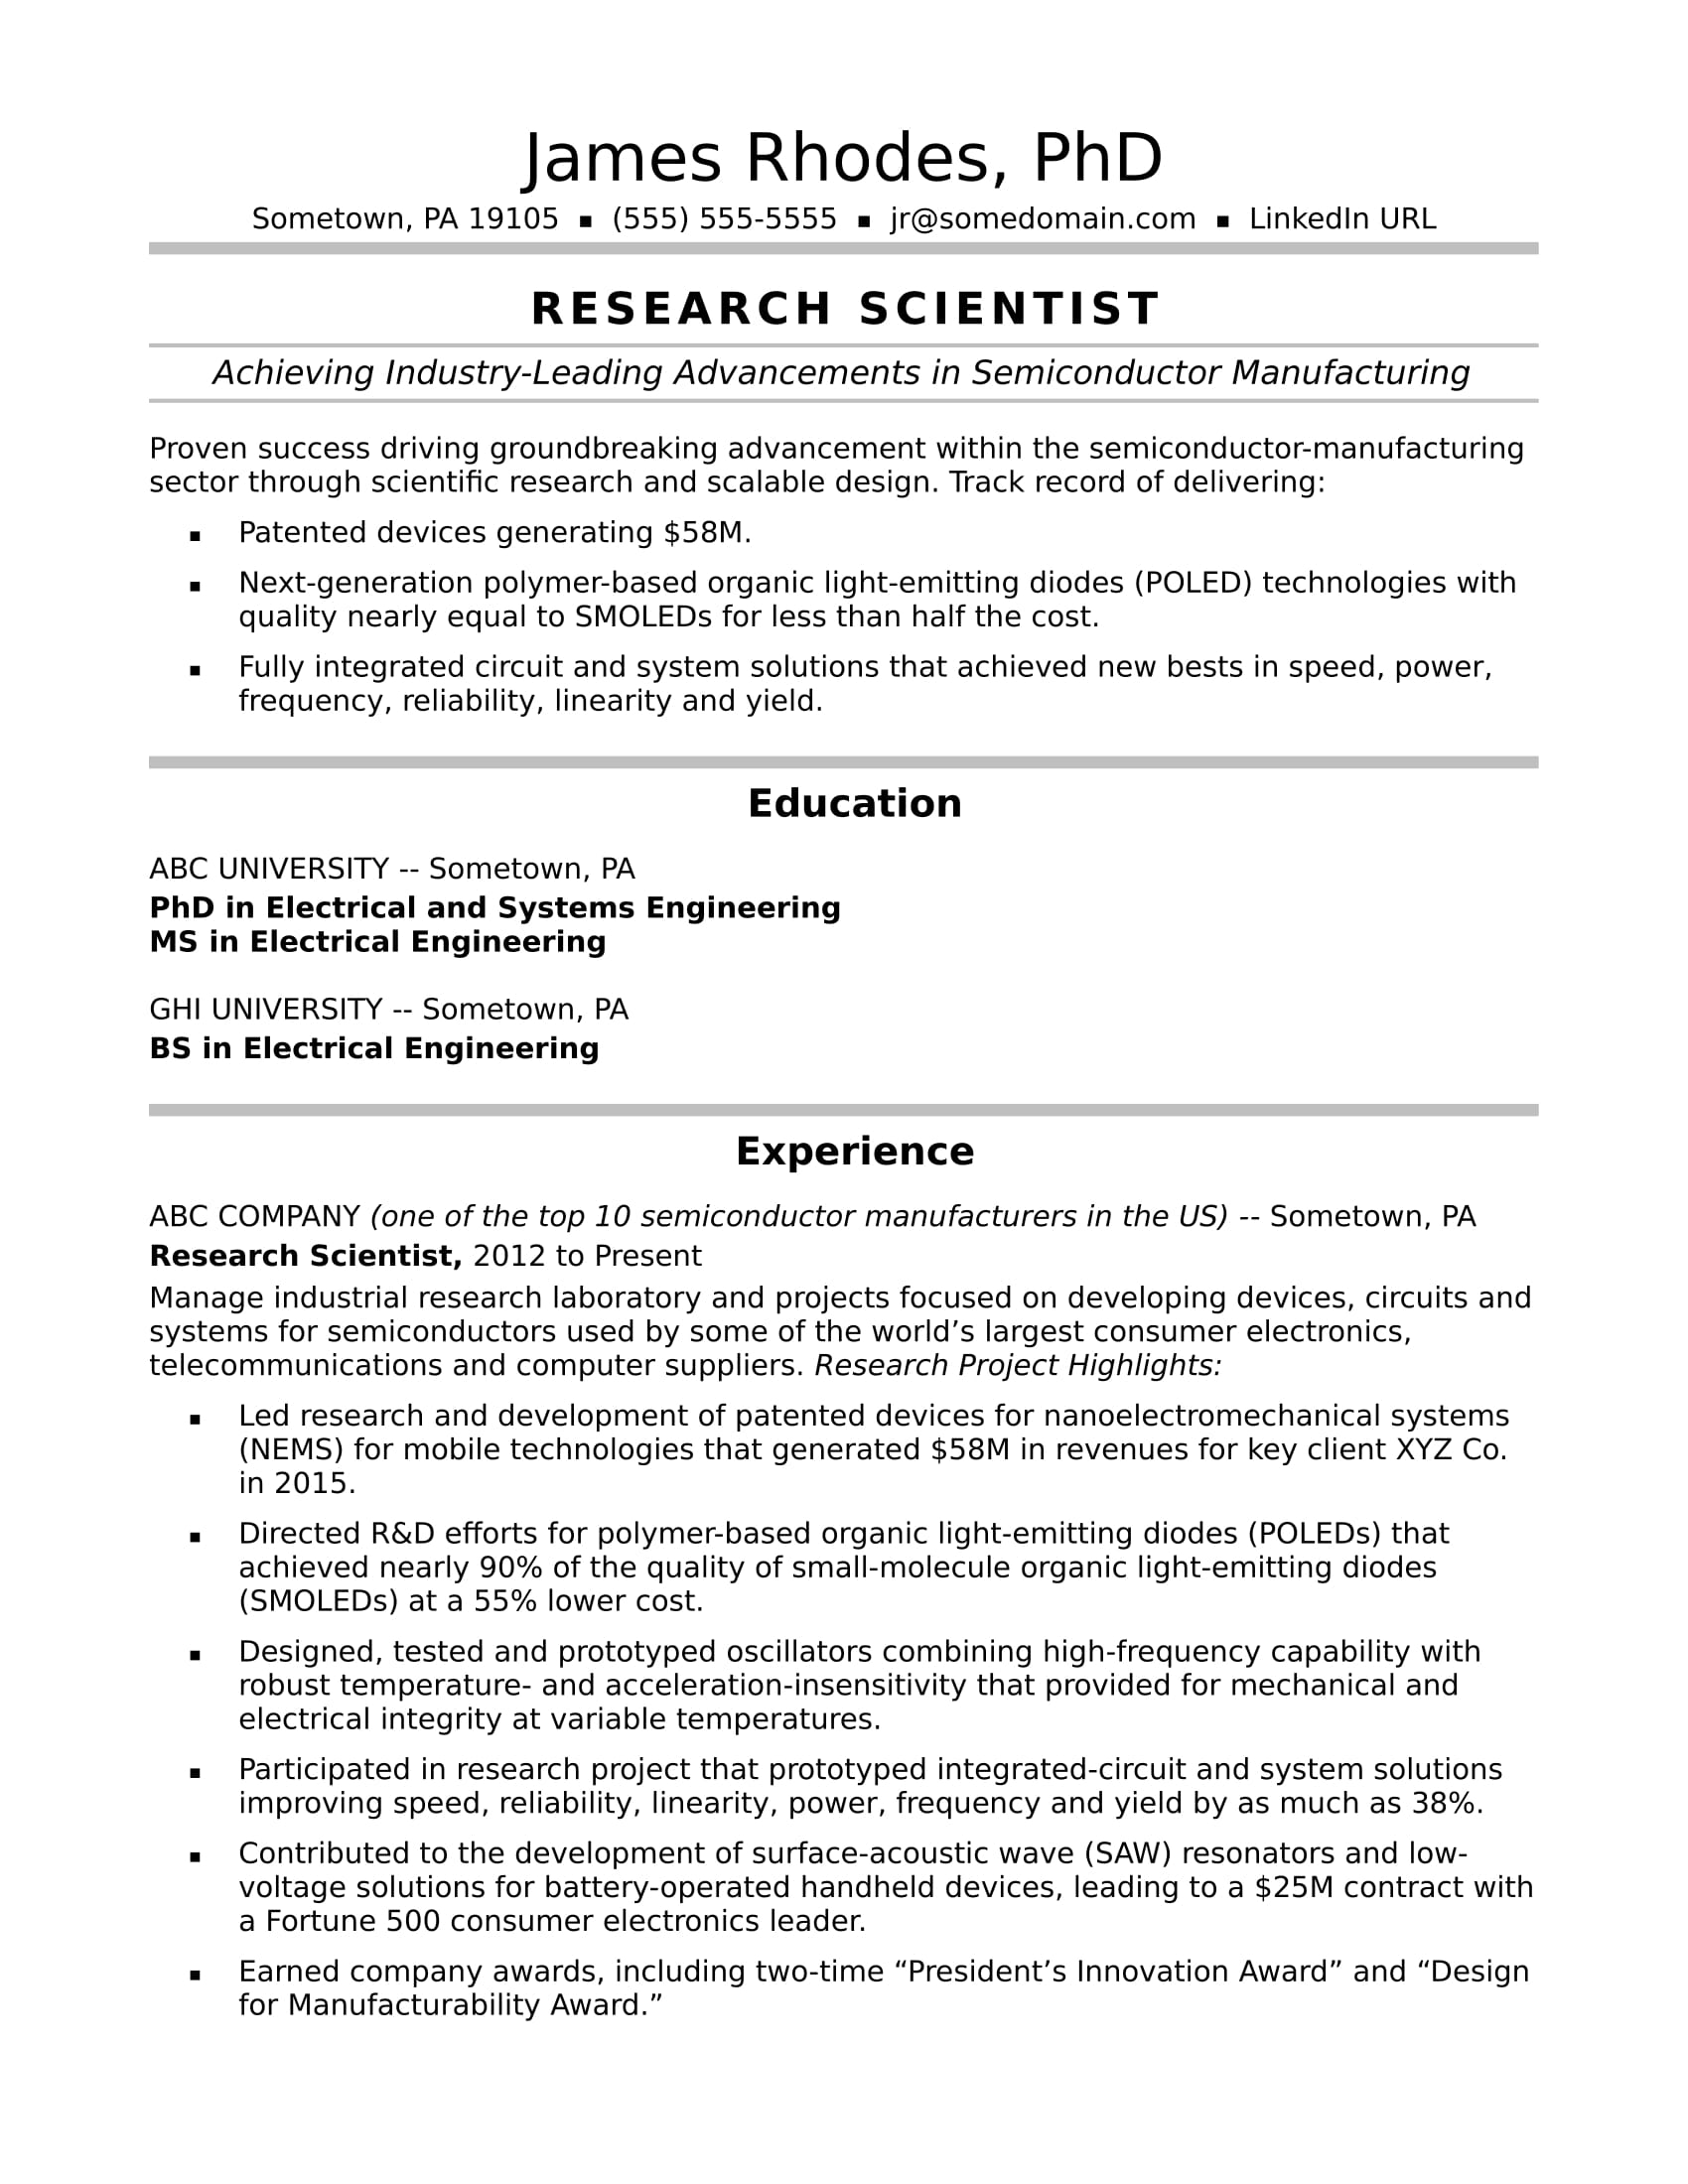 Sample Resume For A Research Scientist  Clinical Laboratory Scientist Resume